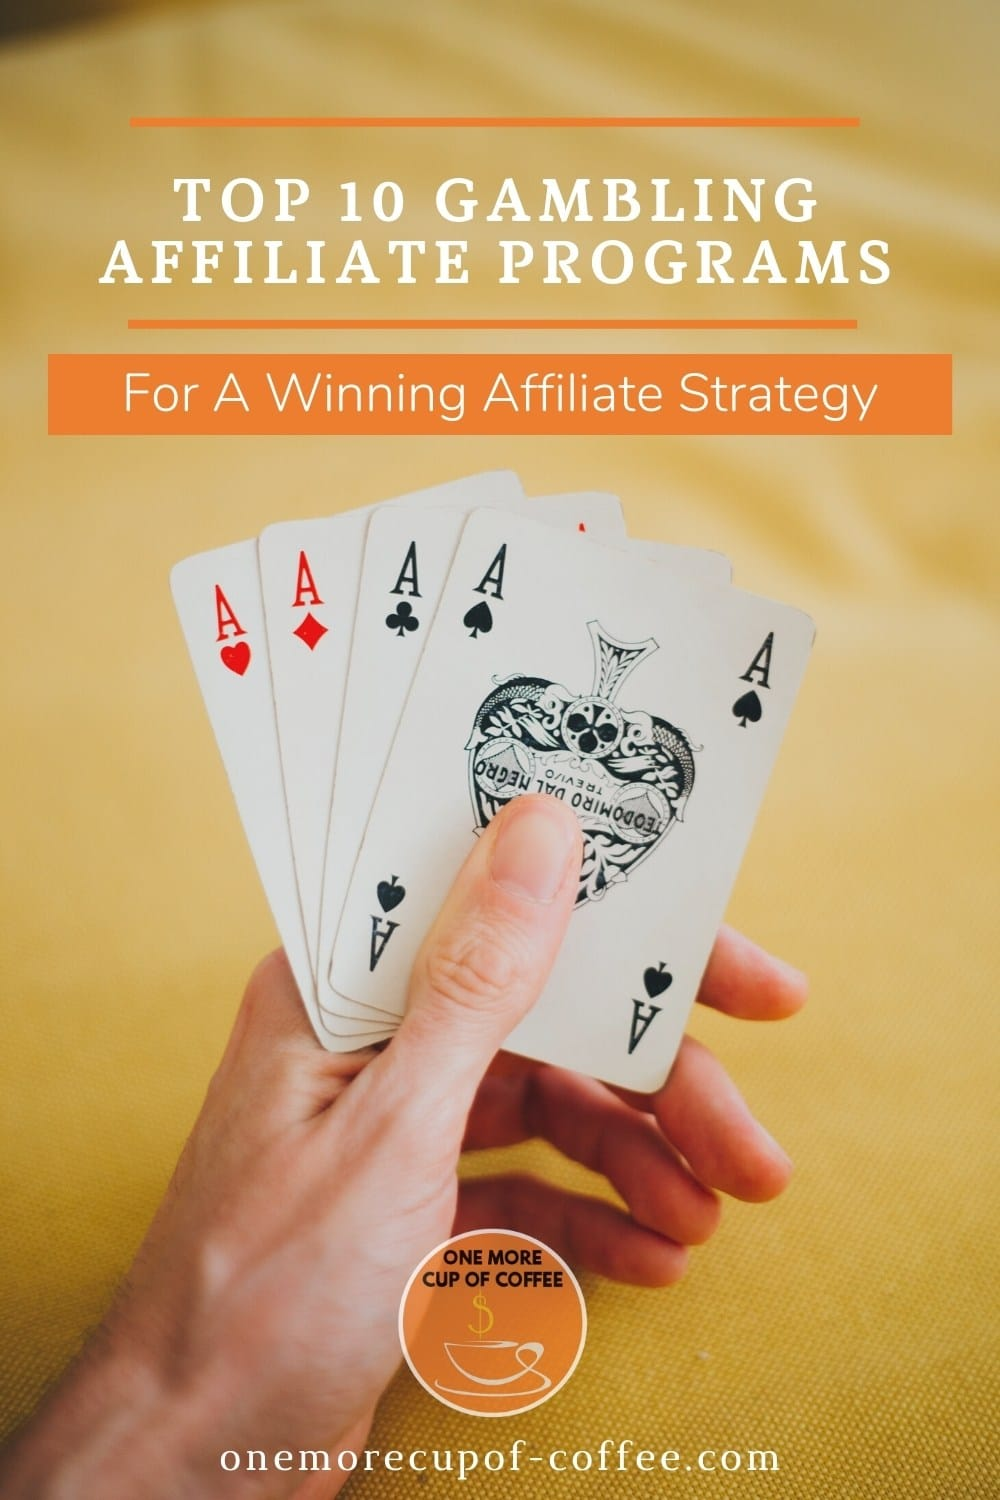 hand holding out four aces against a yellow background, with text overlay Top 10 Gambling Affiliate Programs For A Winning Affiliate Strategy